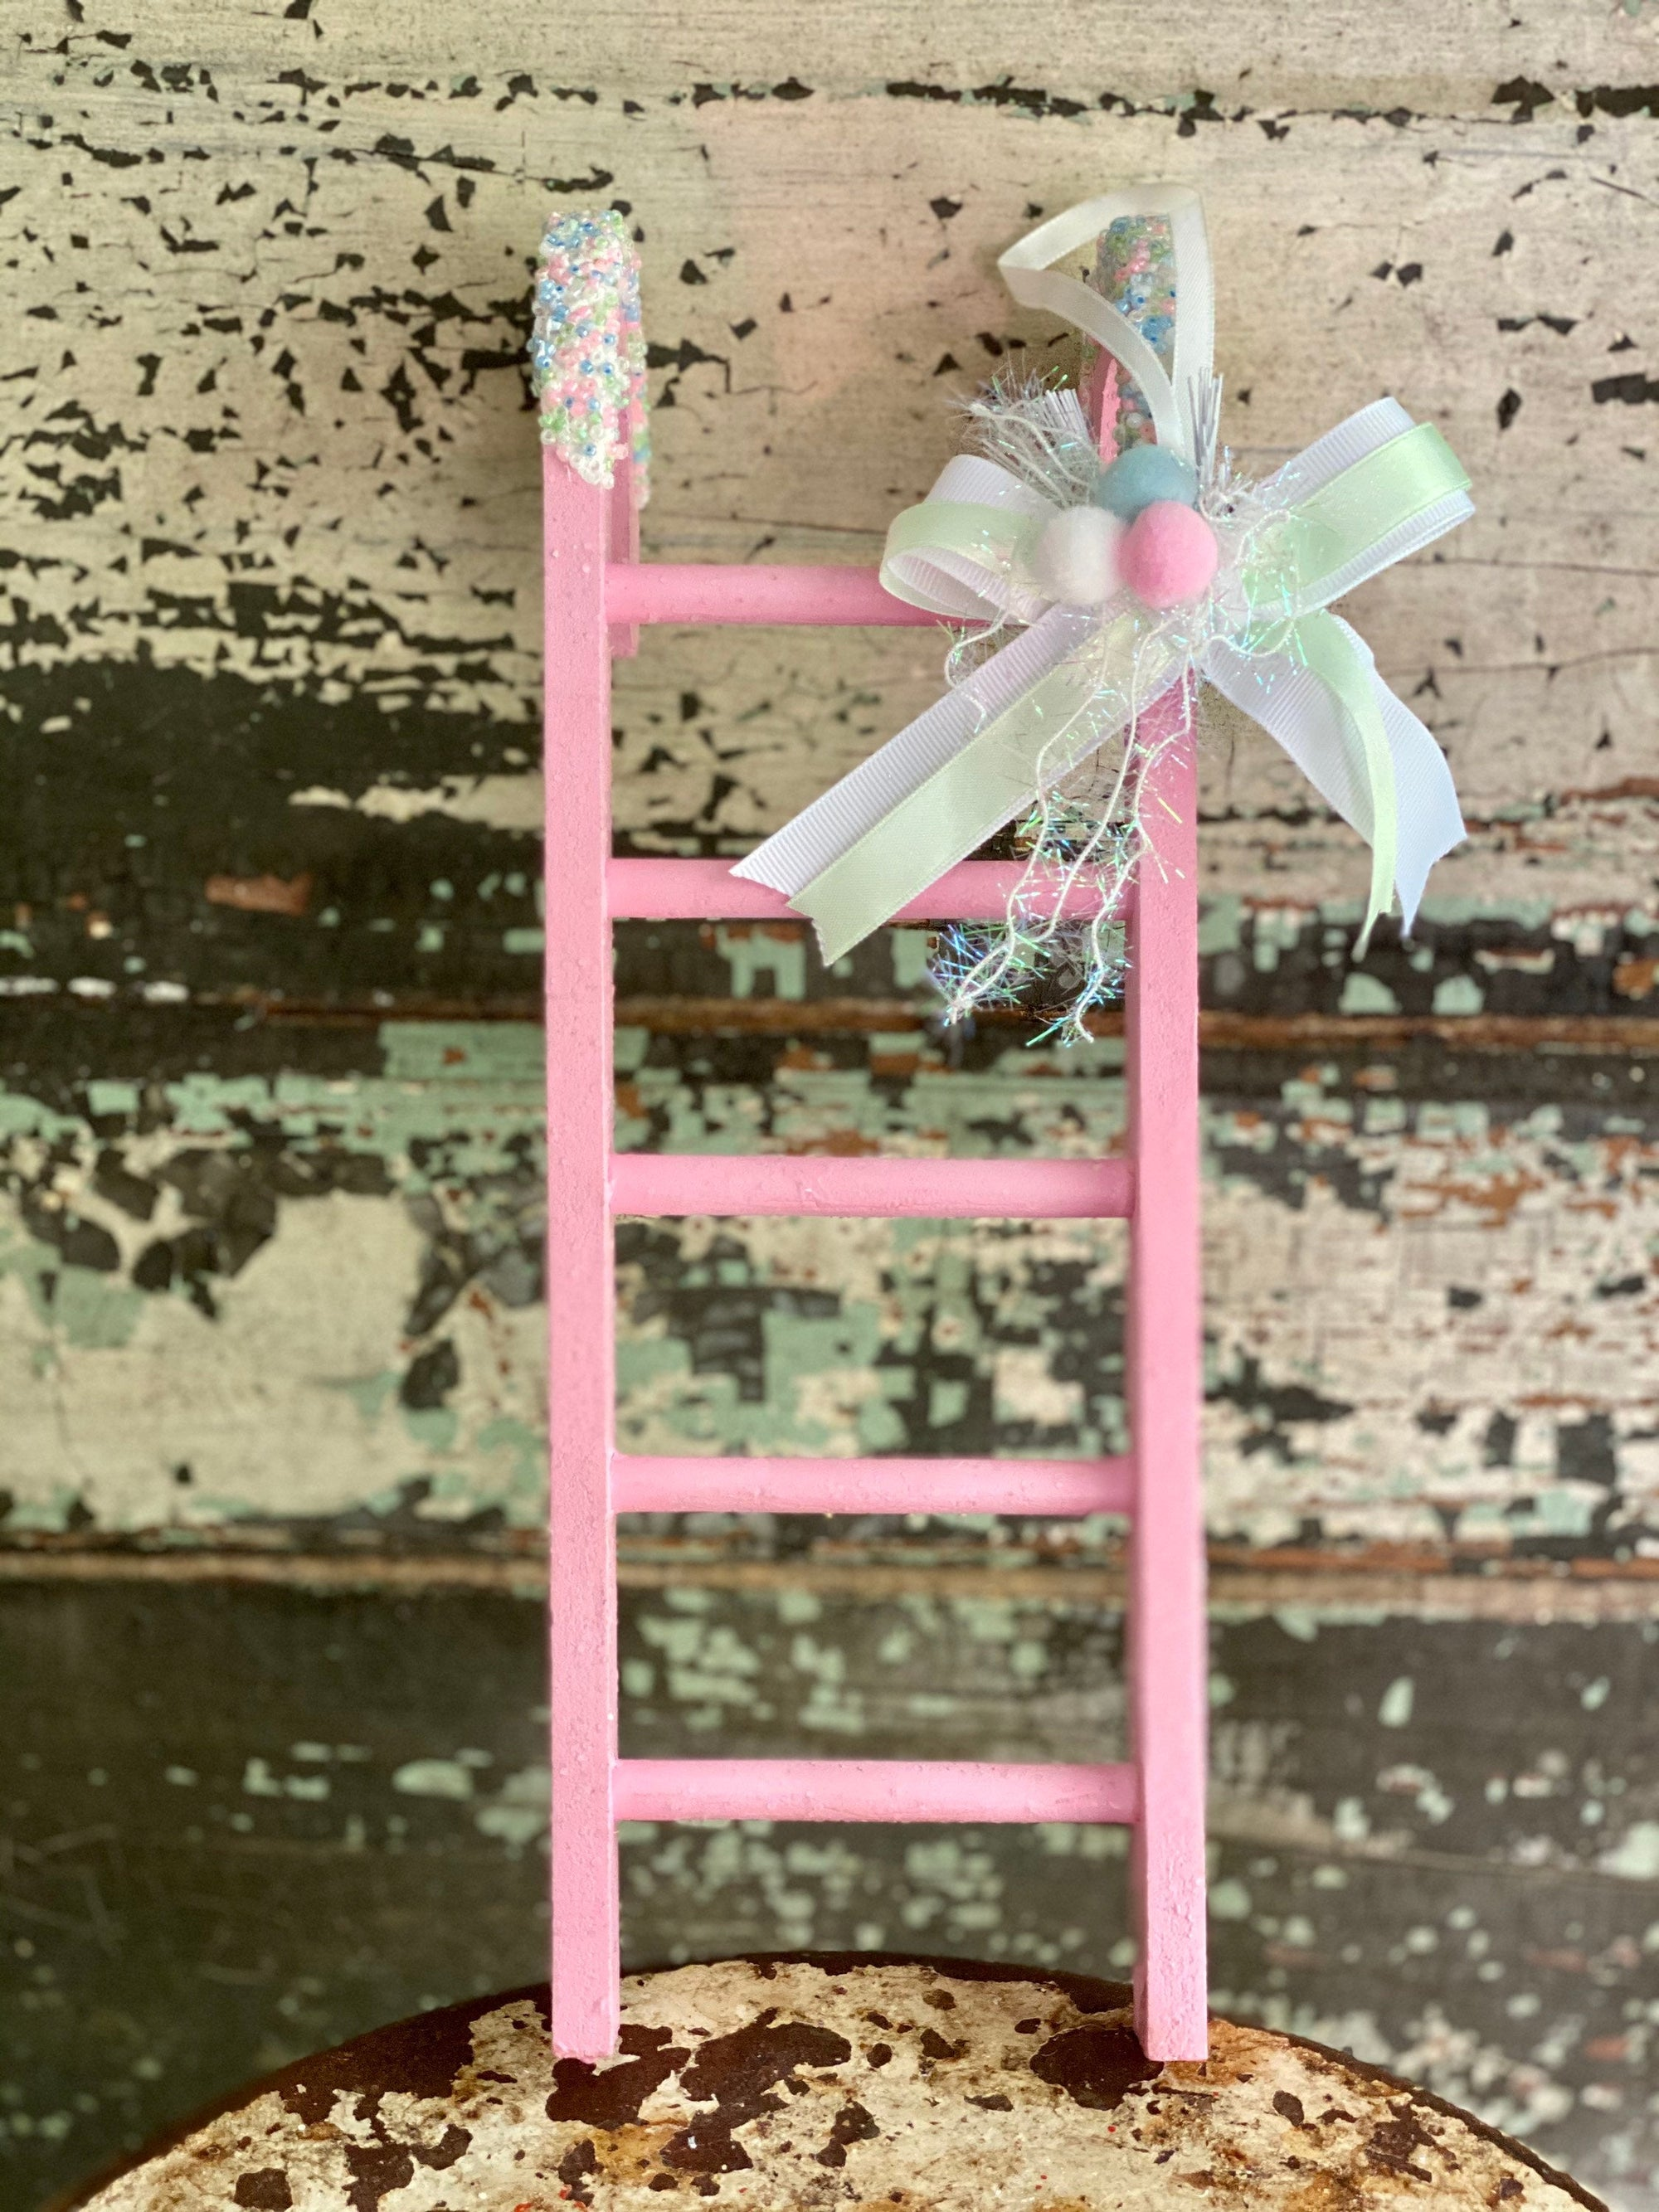 Christmas Candy Cane Ladder Crested Perch